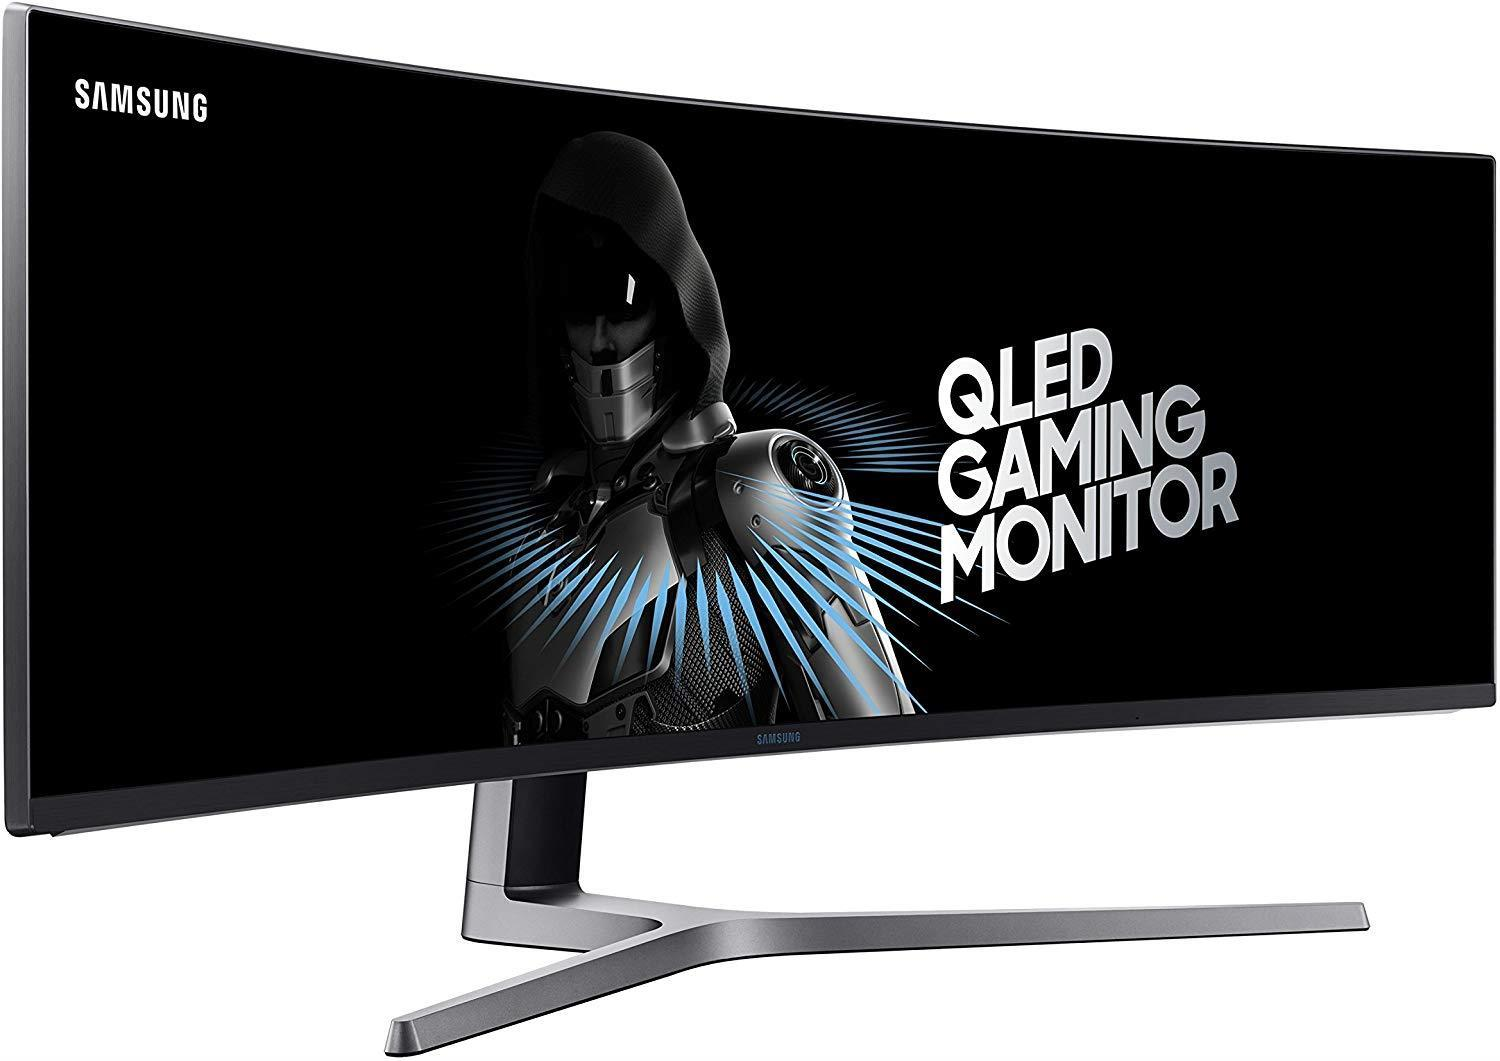 Top 10 Best Gaming Monitors for Console - Samsung 49-Inch CHG90 144Hz